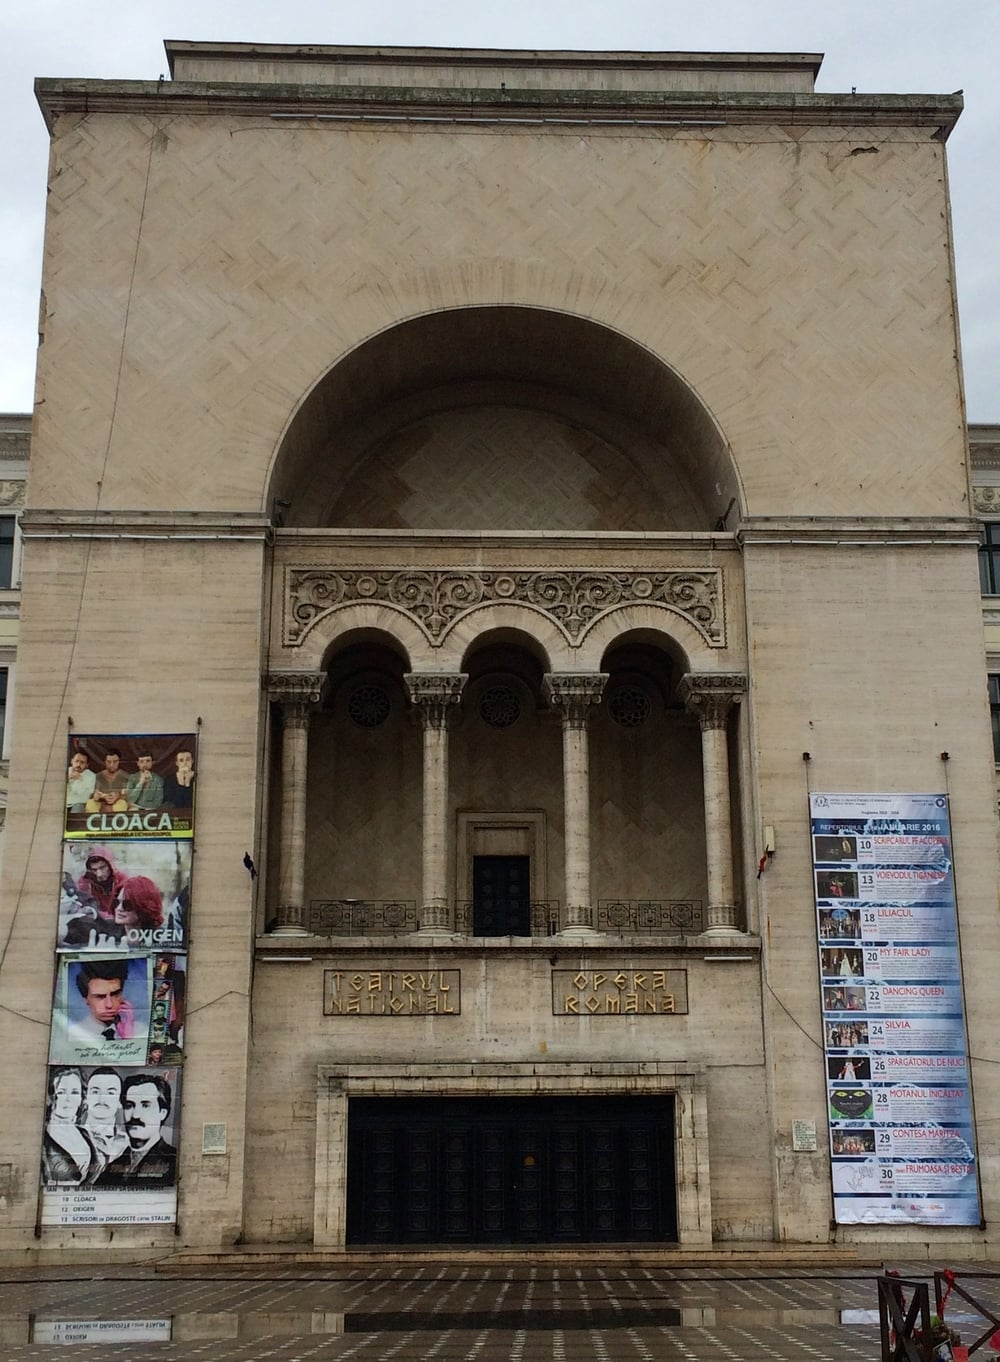 The  Romanian National Opera House . They asked me to stay and sing. I had to decline. (Mostly because I can't sing.)